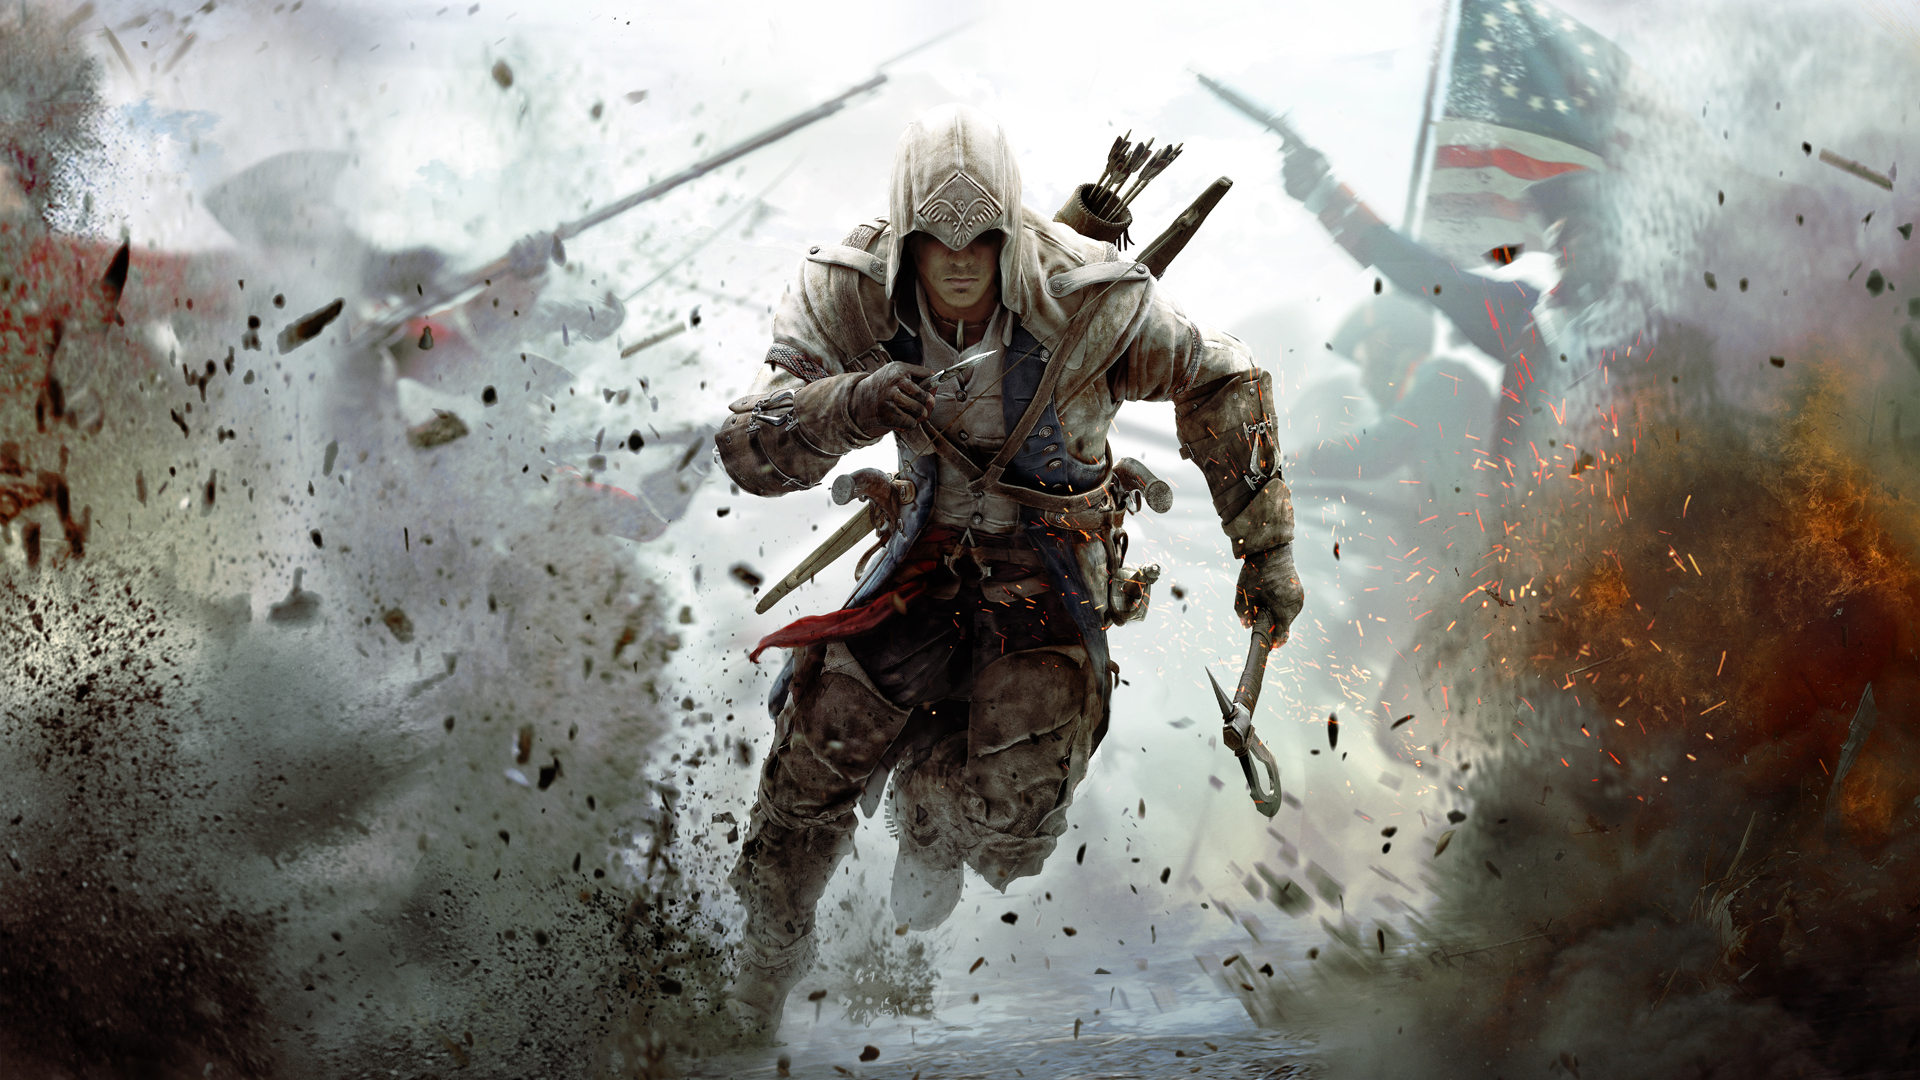 15. Assassin's Creed 3